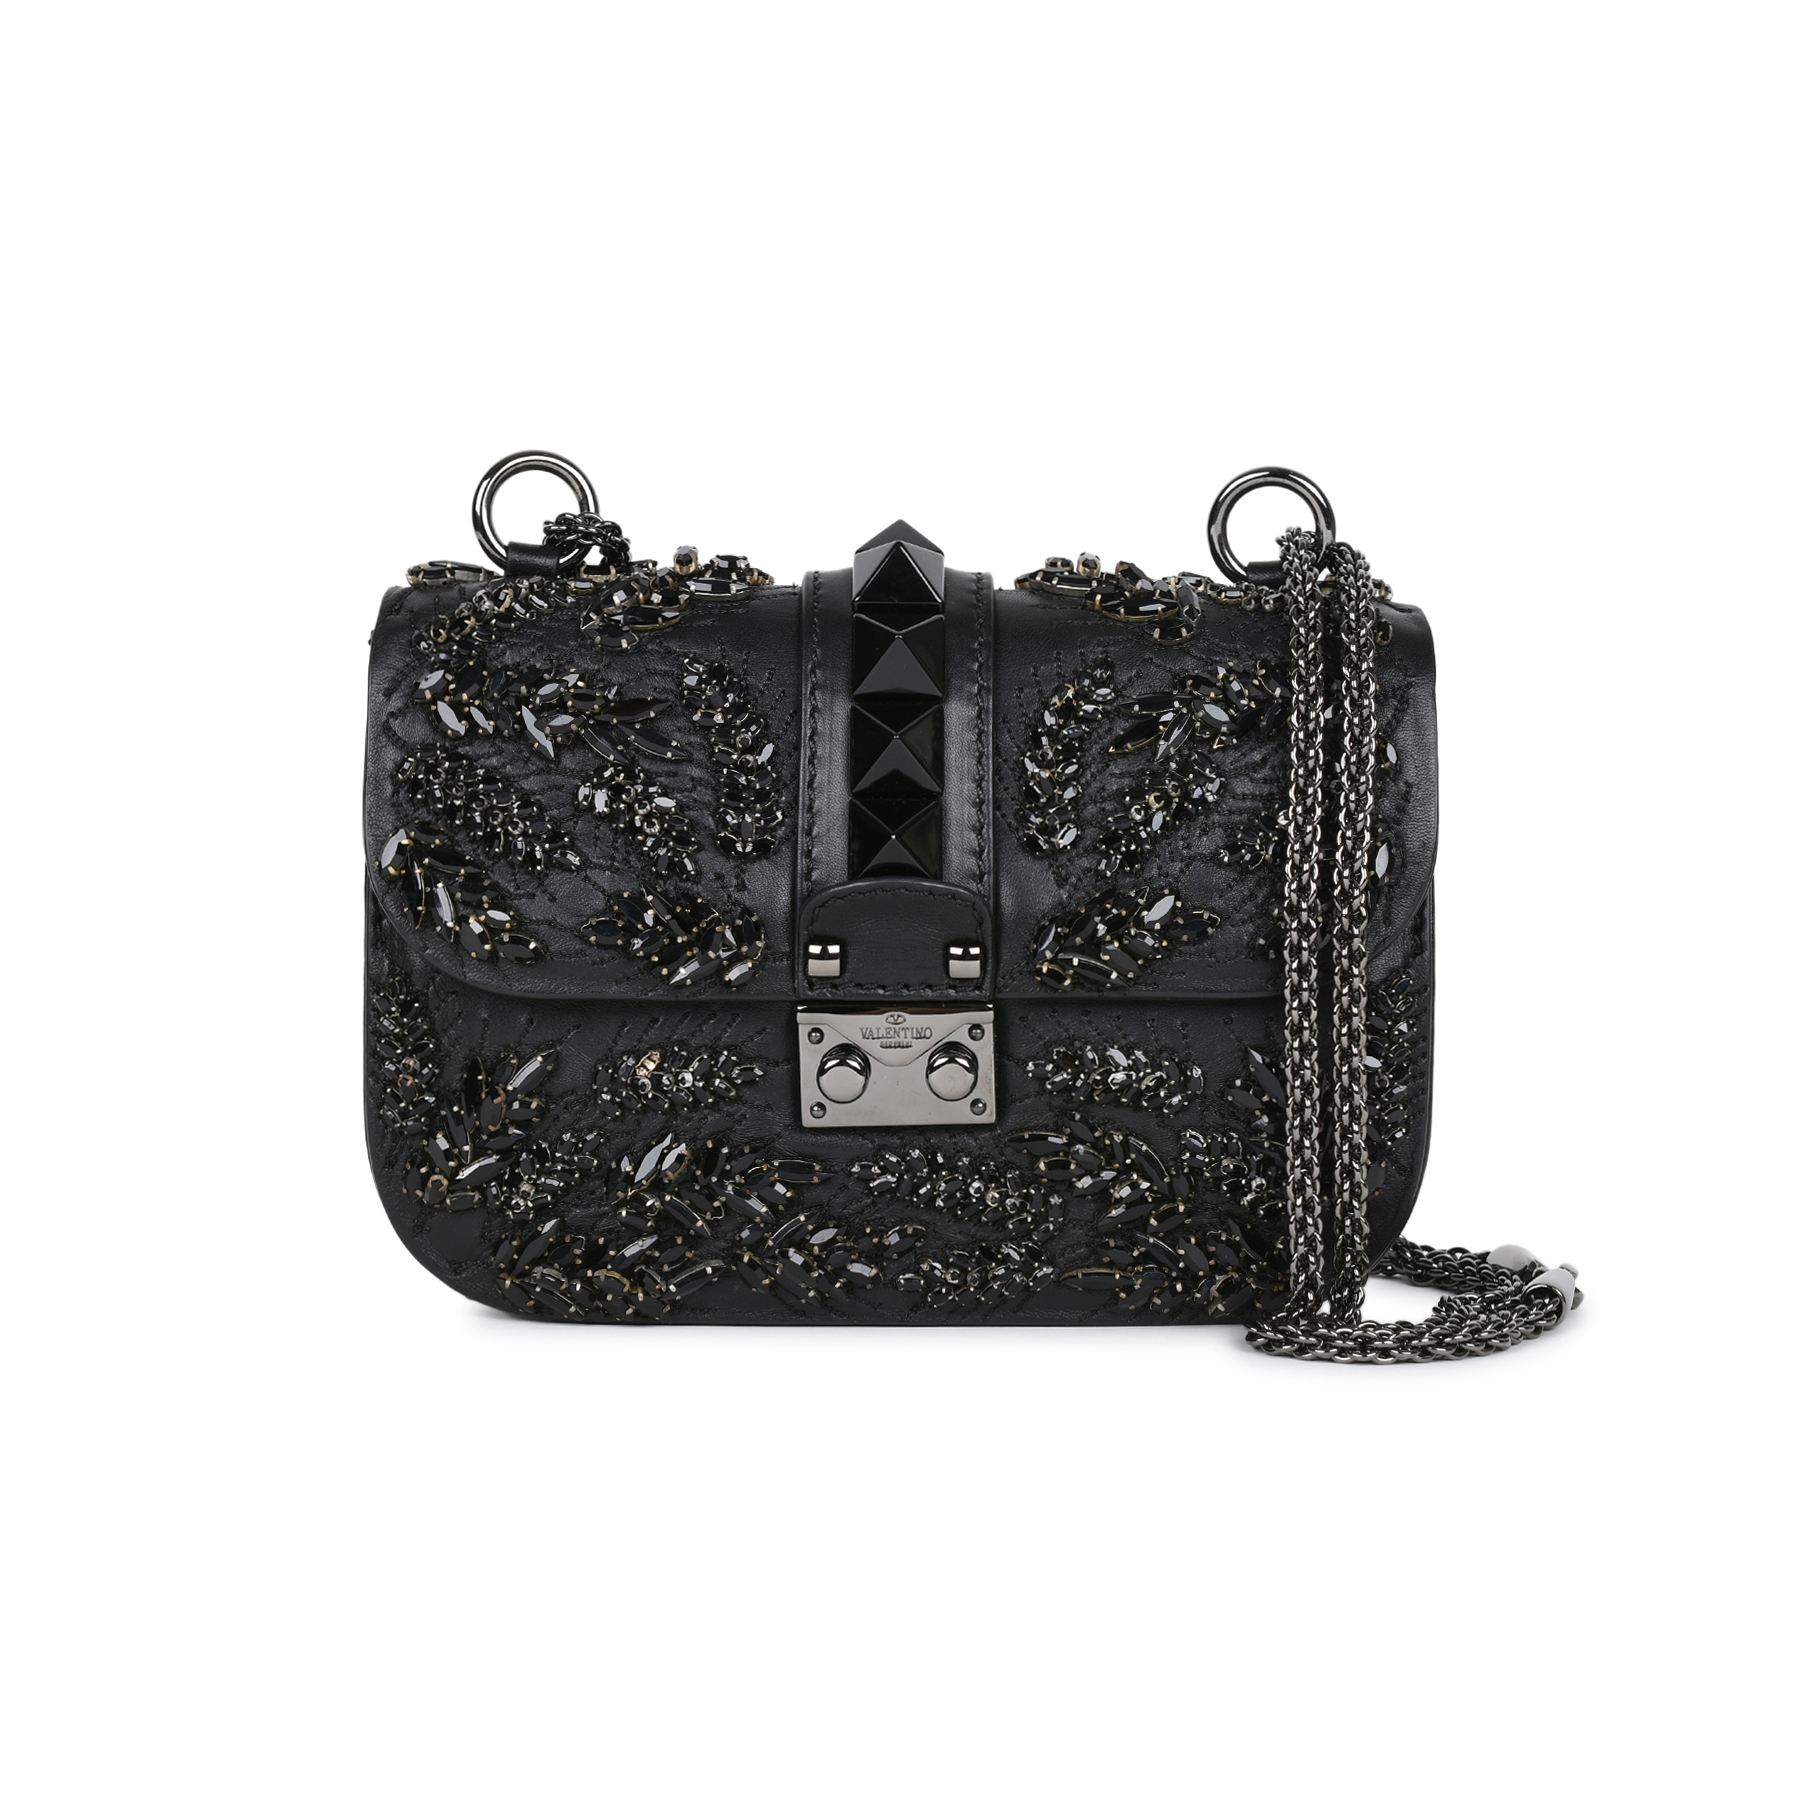 3239eec8a2 Authentic Second Hand Valentino Rockstud Lock Embellished Small Shoulder  Bag (PSS-051-00389) - THE FIFTH COLLECTION